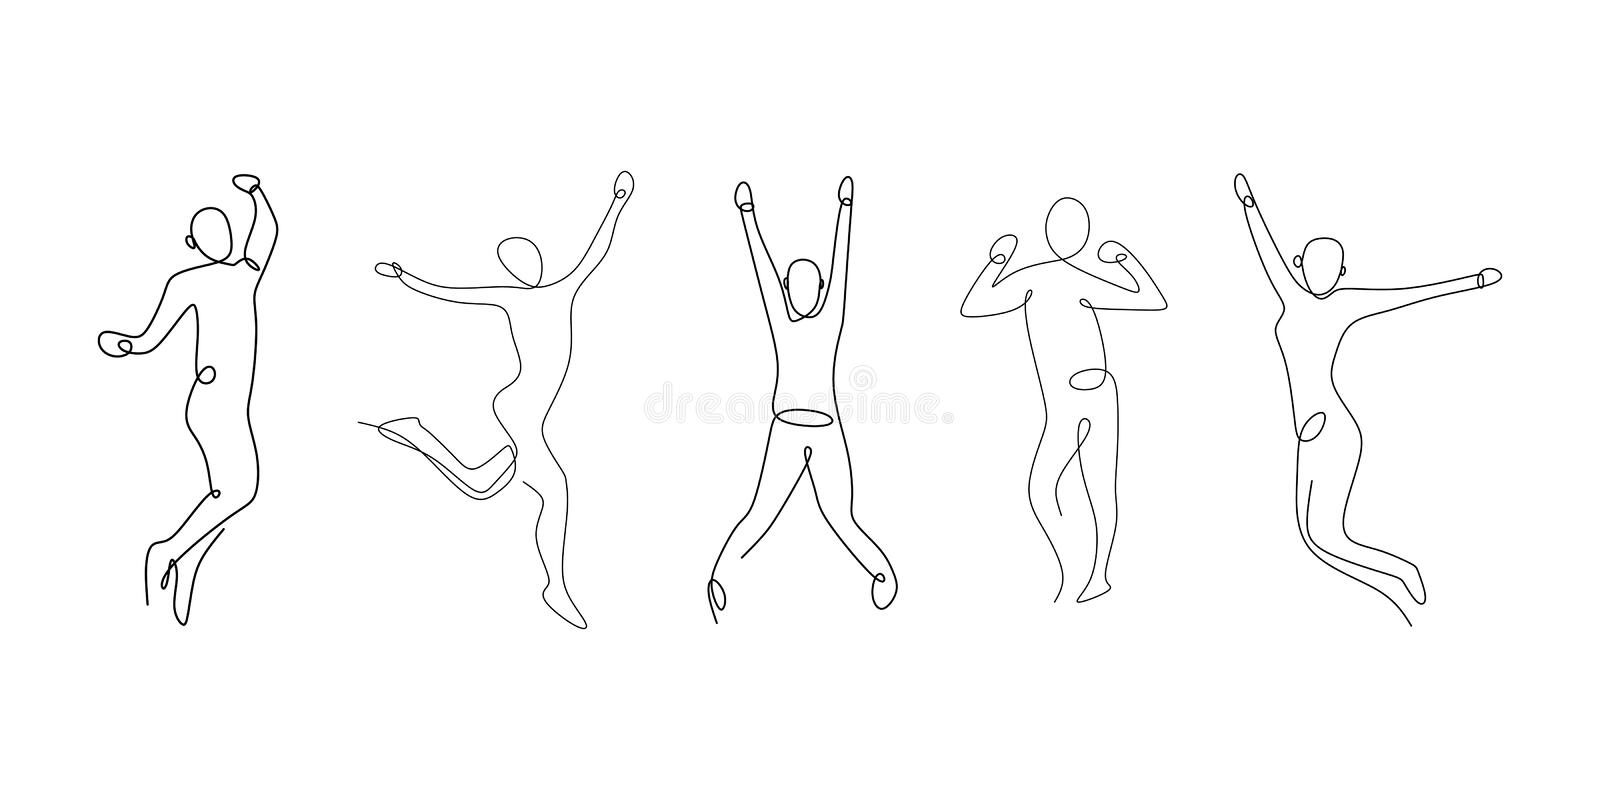 Three person looks happy and attractive with continuous single line drawing vector illustration. Sketch people linear isolated success contour doodle hand drawn royalty free illustration